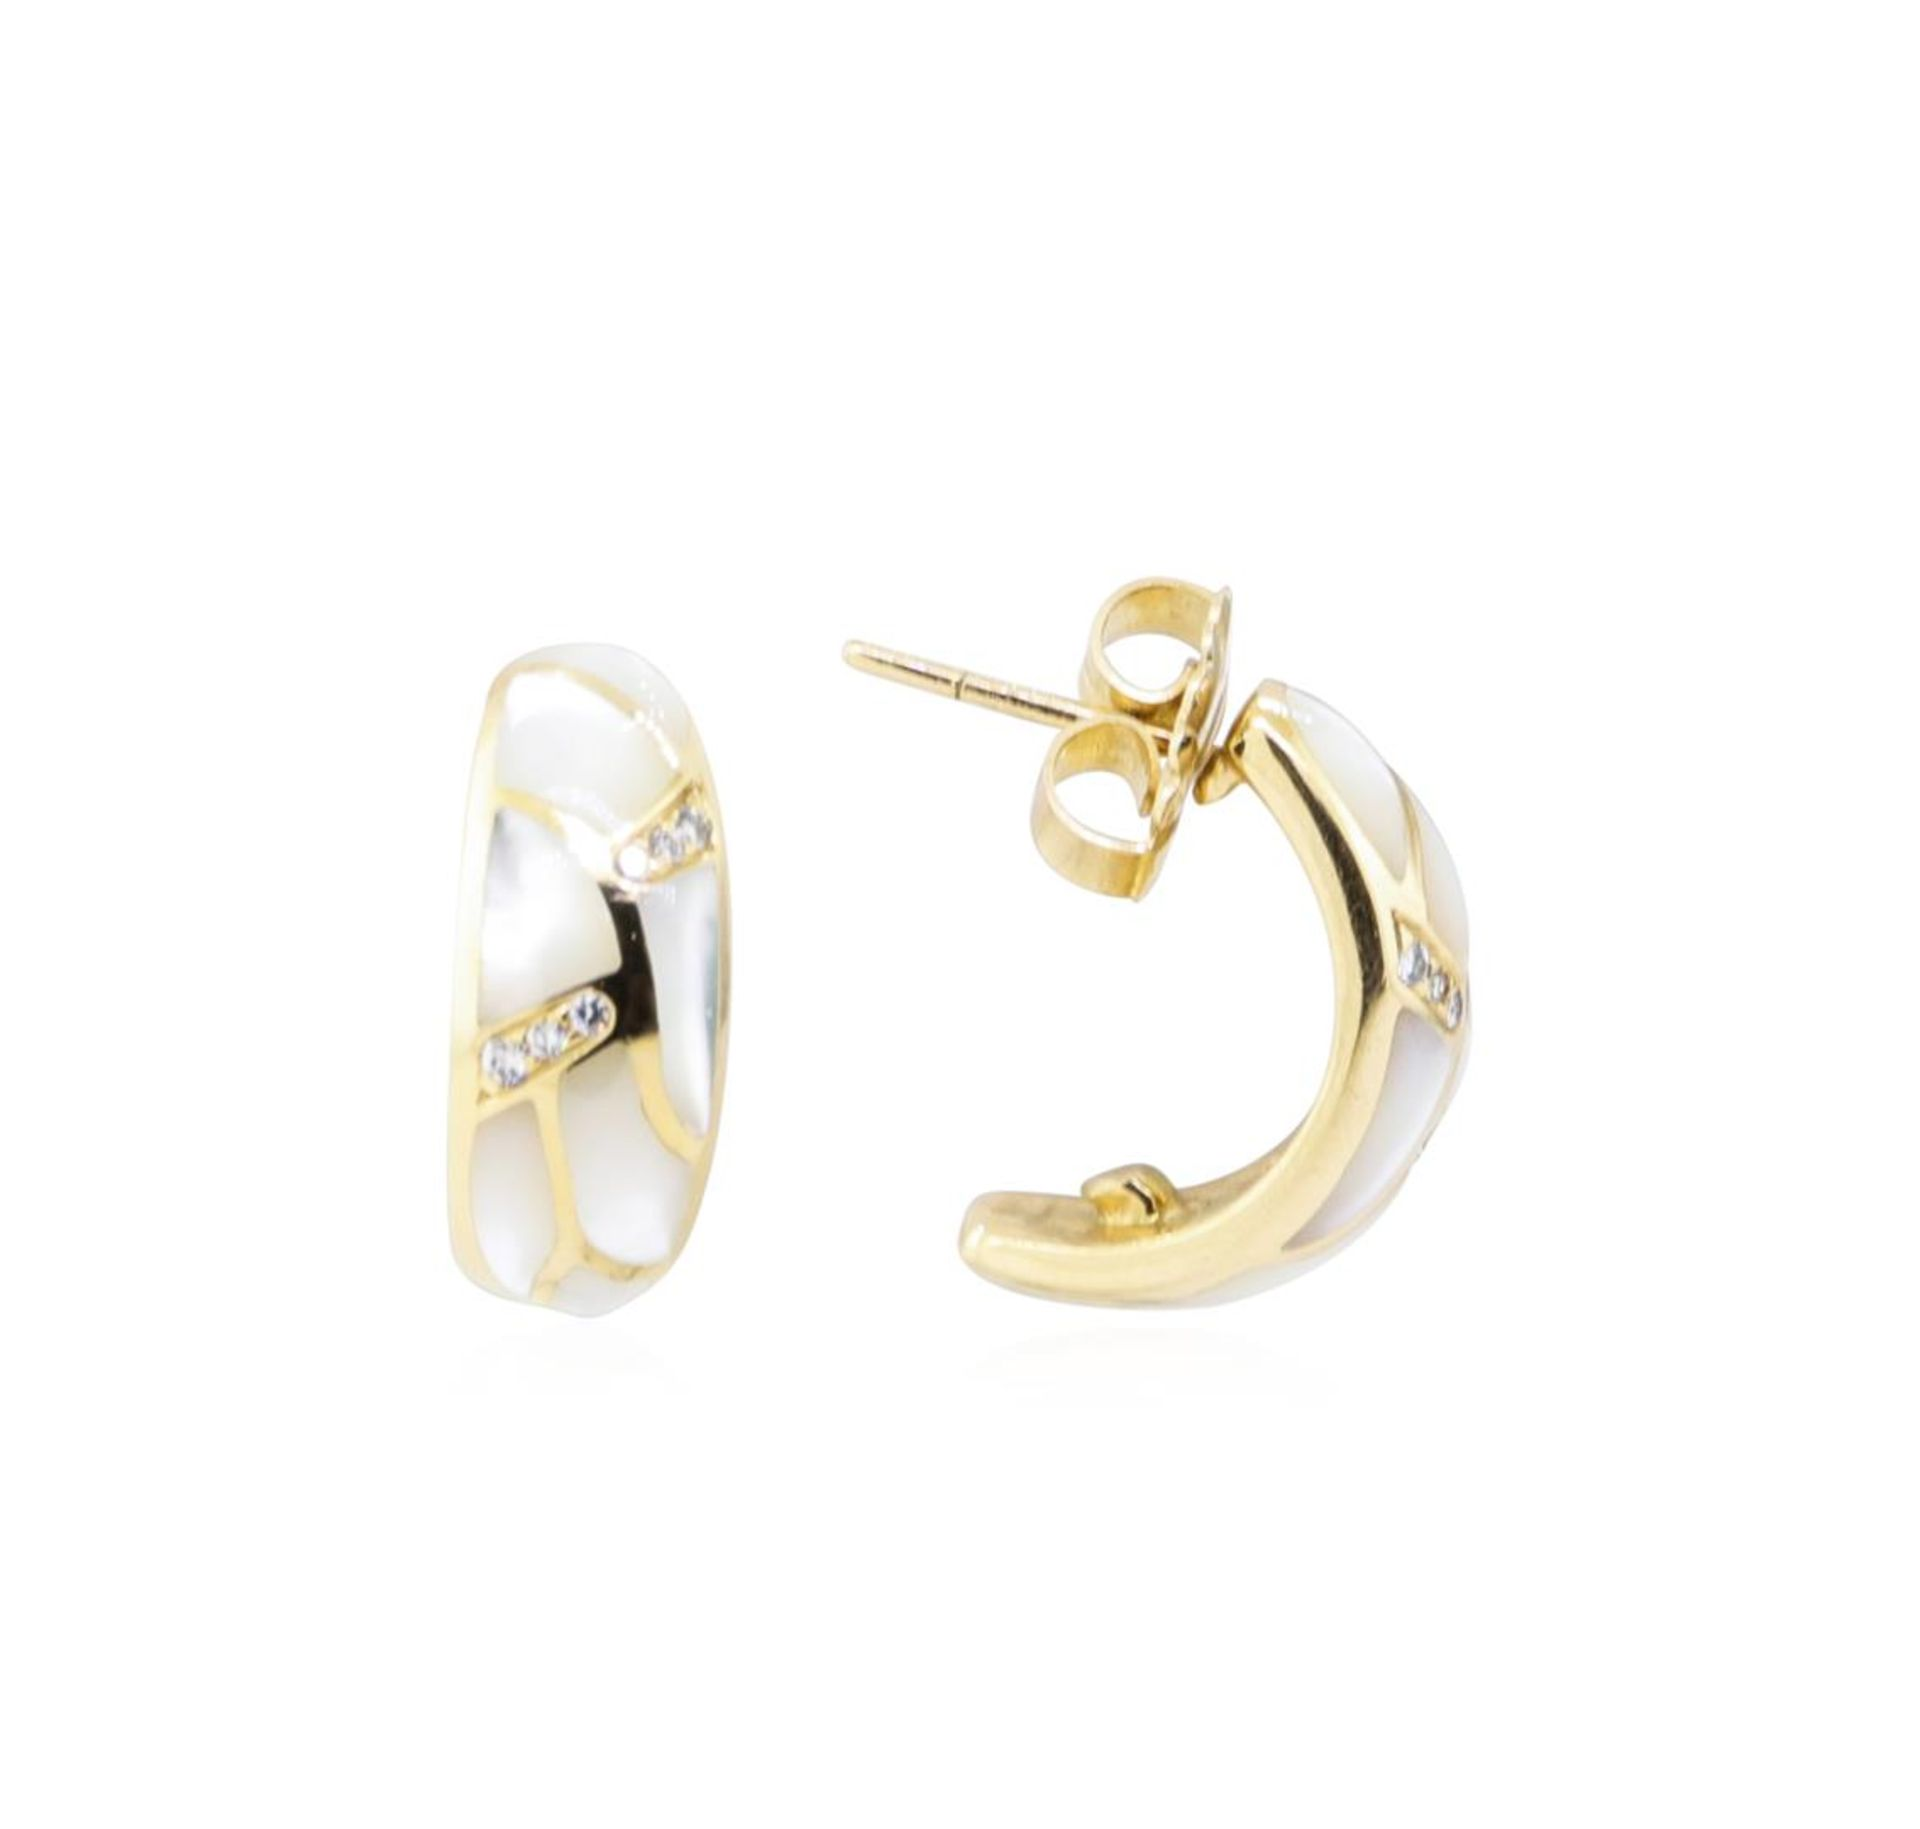 Kabana 0.25ctw Diamond and Inlaid Mother of Pearl Earrings - 14KT Yellow Gold - Image 2 of 2